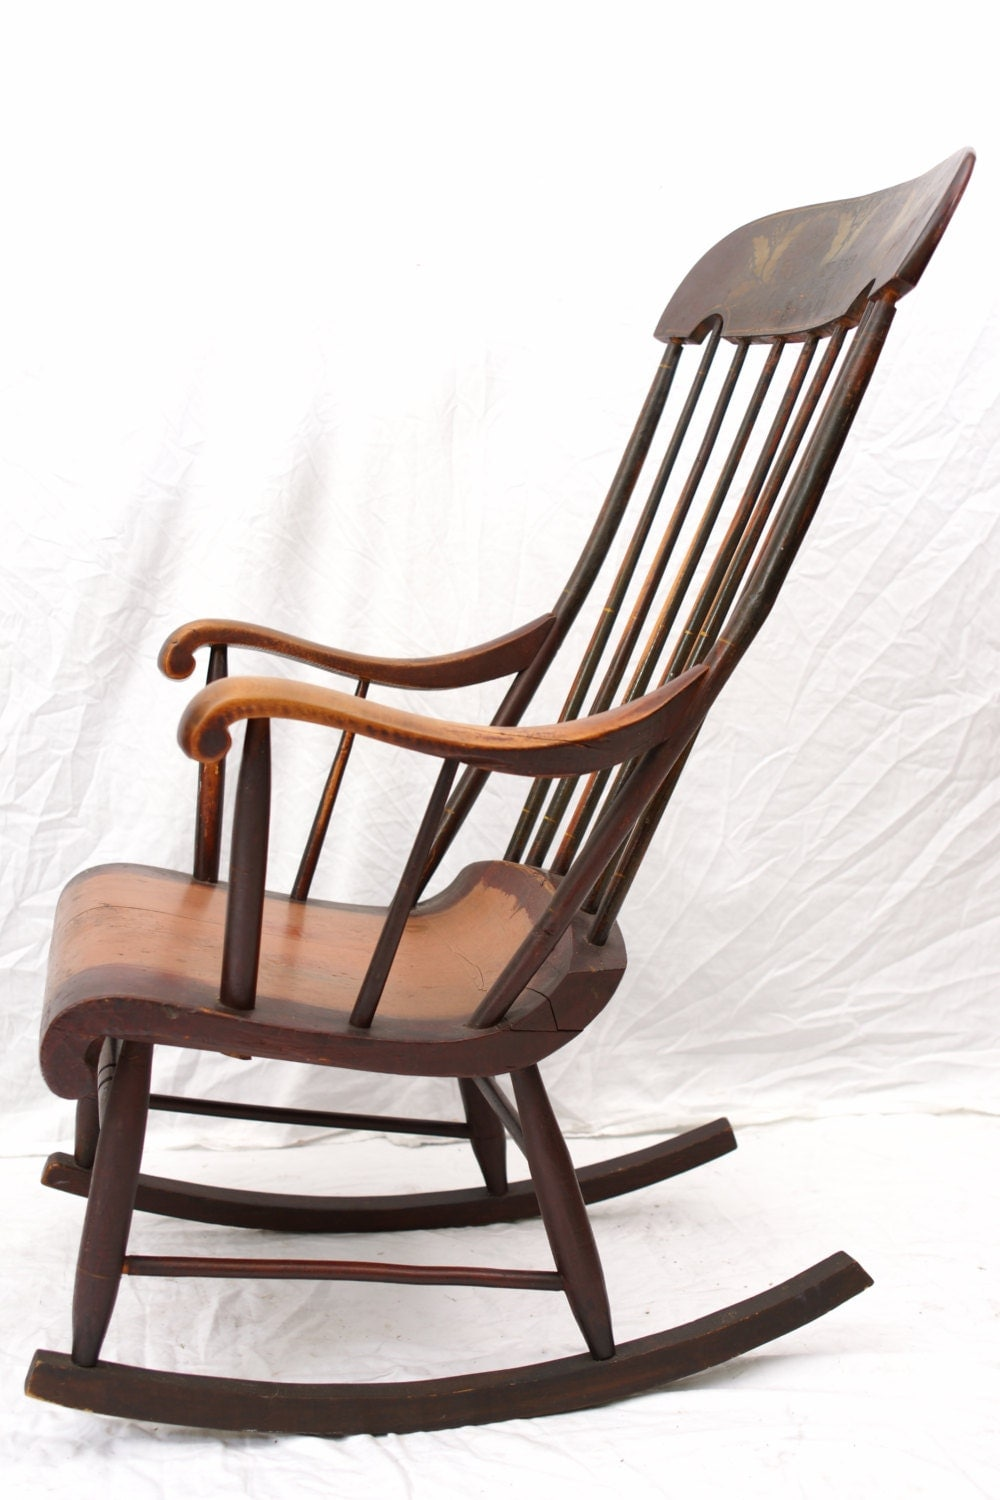 antique rocking chair boston rocker hitchcock style stenciled painted